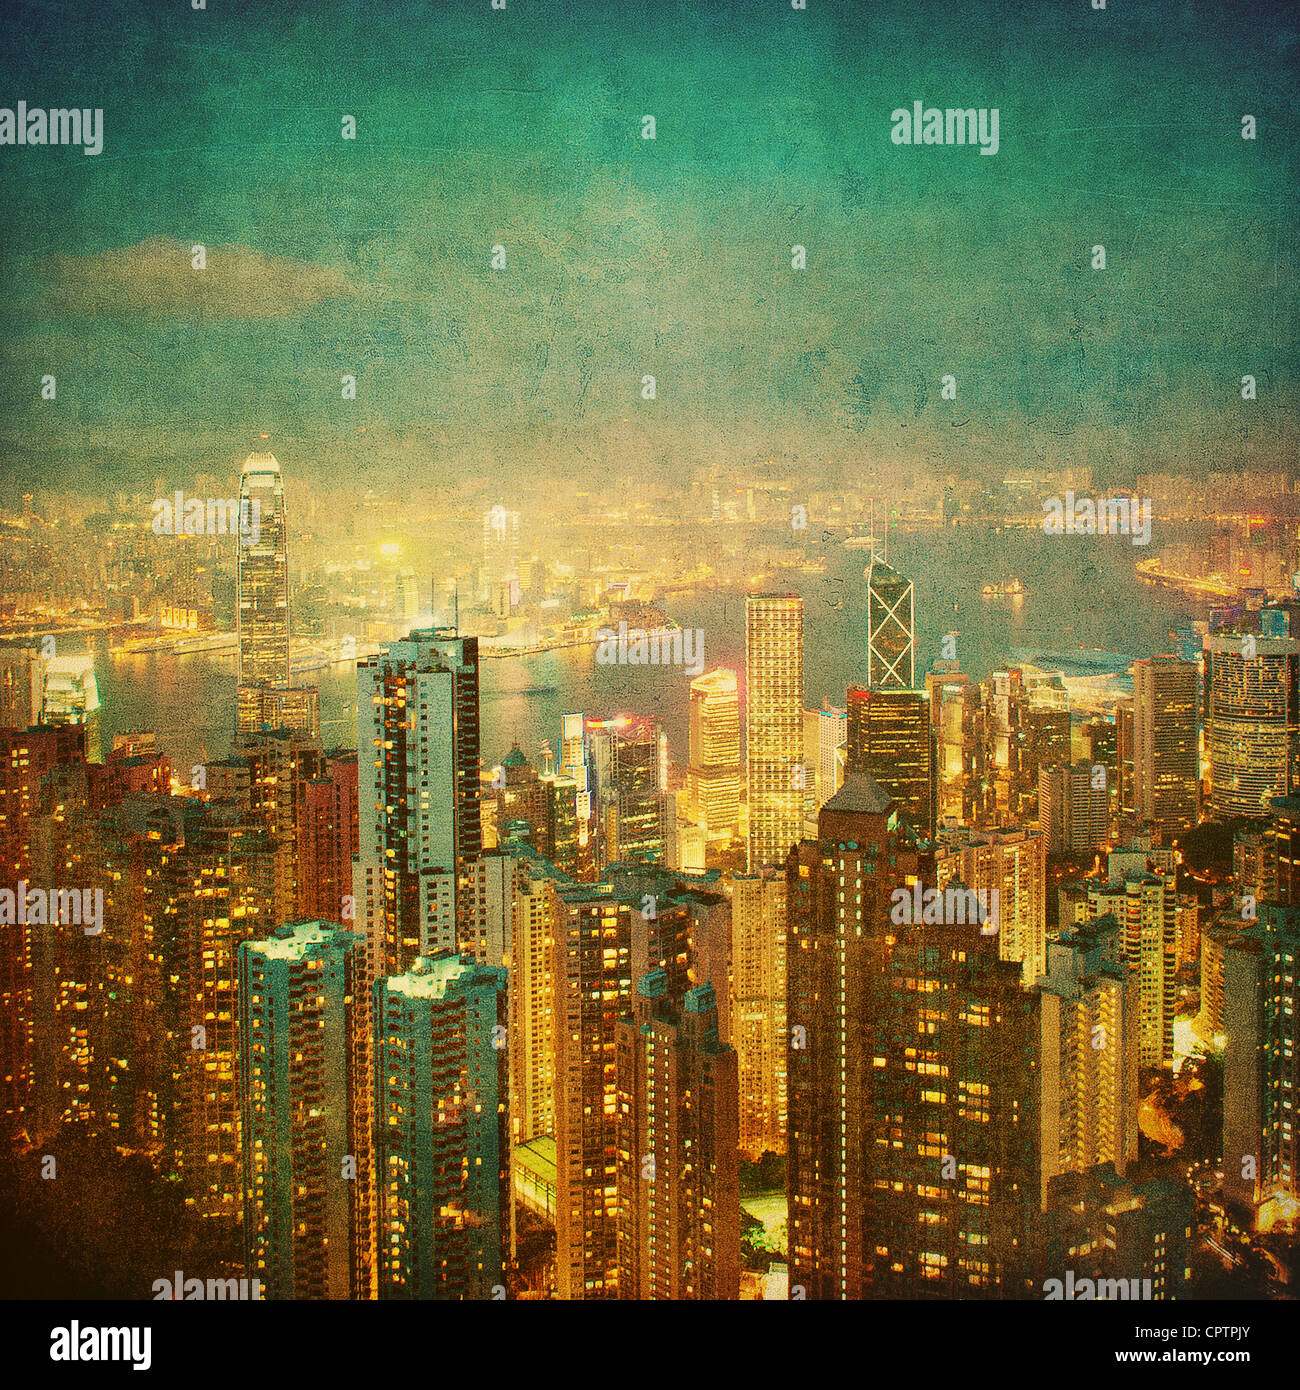 vintage image of hong kong - Stock Image